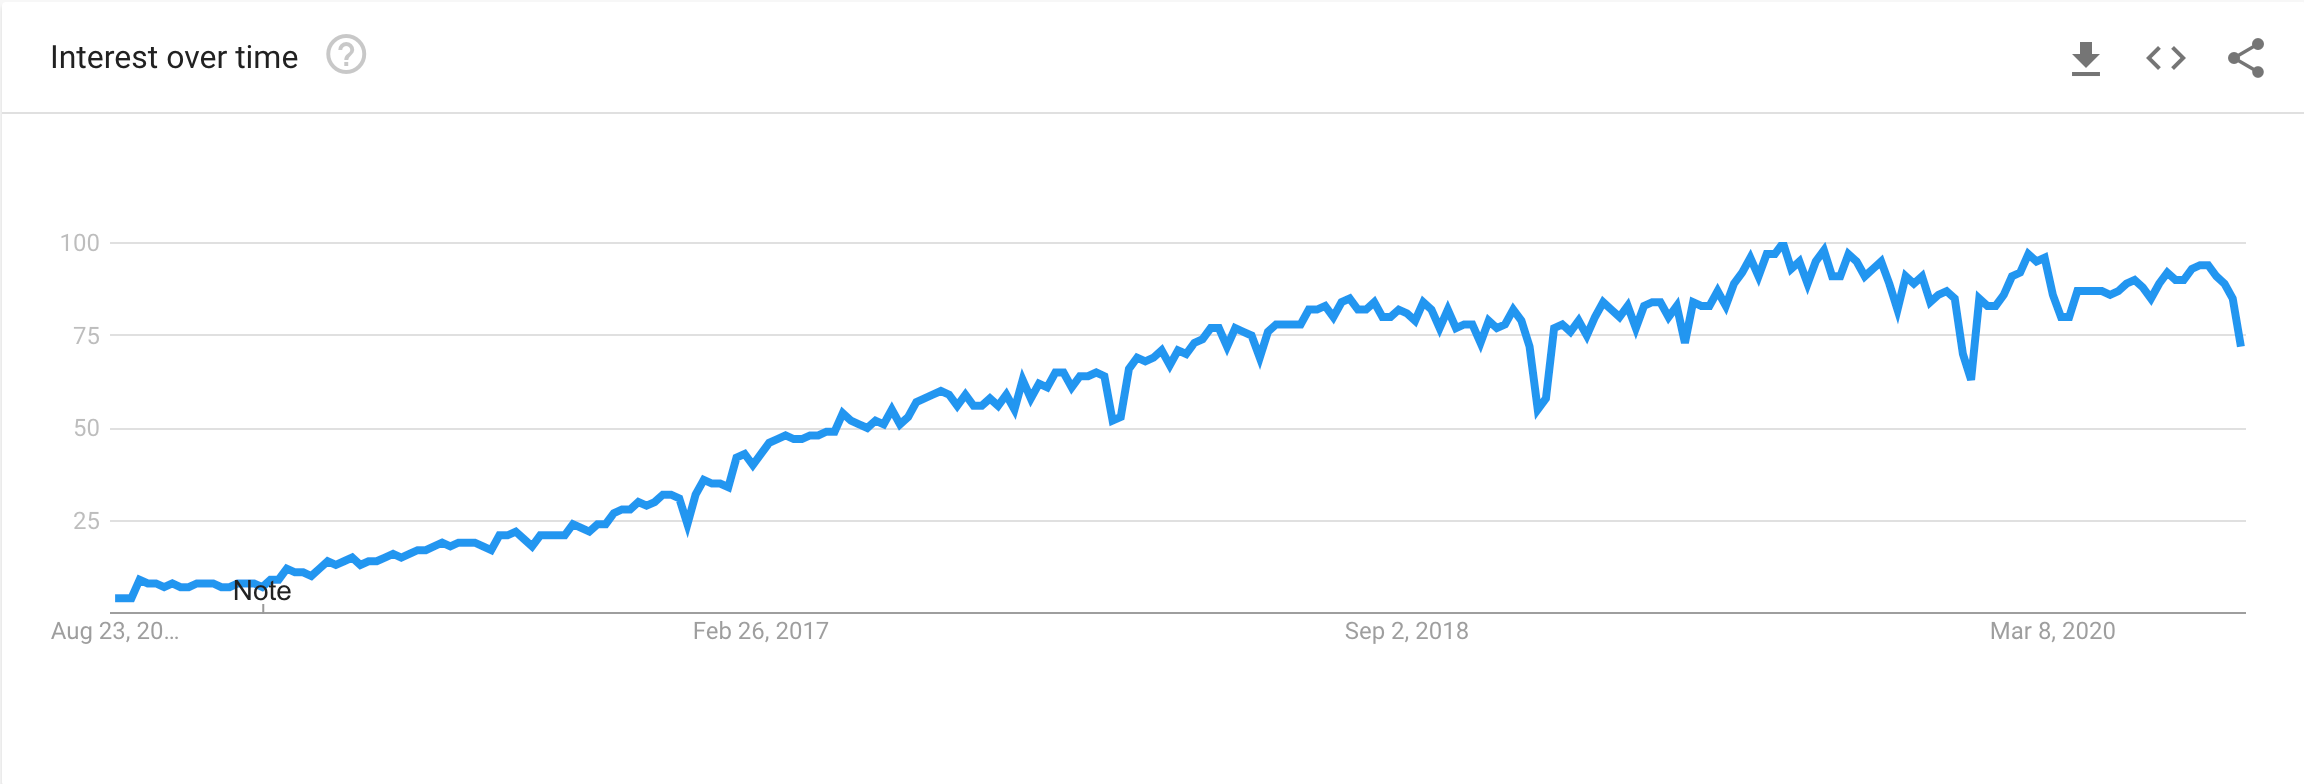 React Native's interest over time (Google Trends)